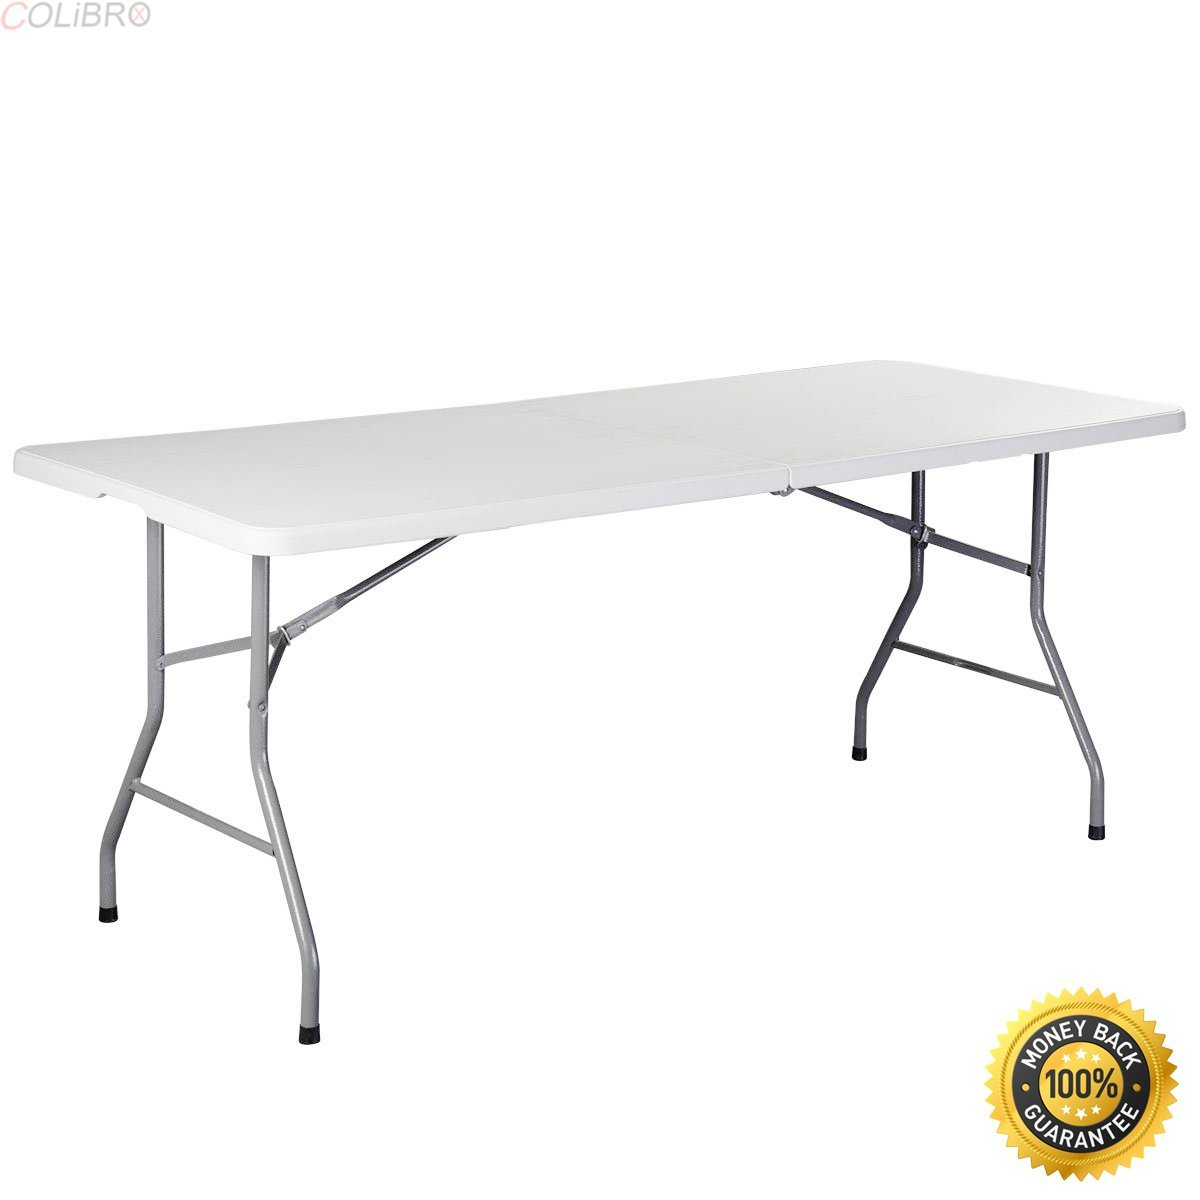 COLIBROX--6' Folding Table Portable Plastic Indoor Outdoor Picnic Party Dining Camp Tables, 6Ft Portable Multipurpose Fold In Half Table,Folding Table,6 foot adjustable height fold in half table